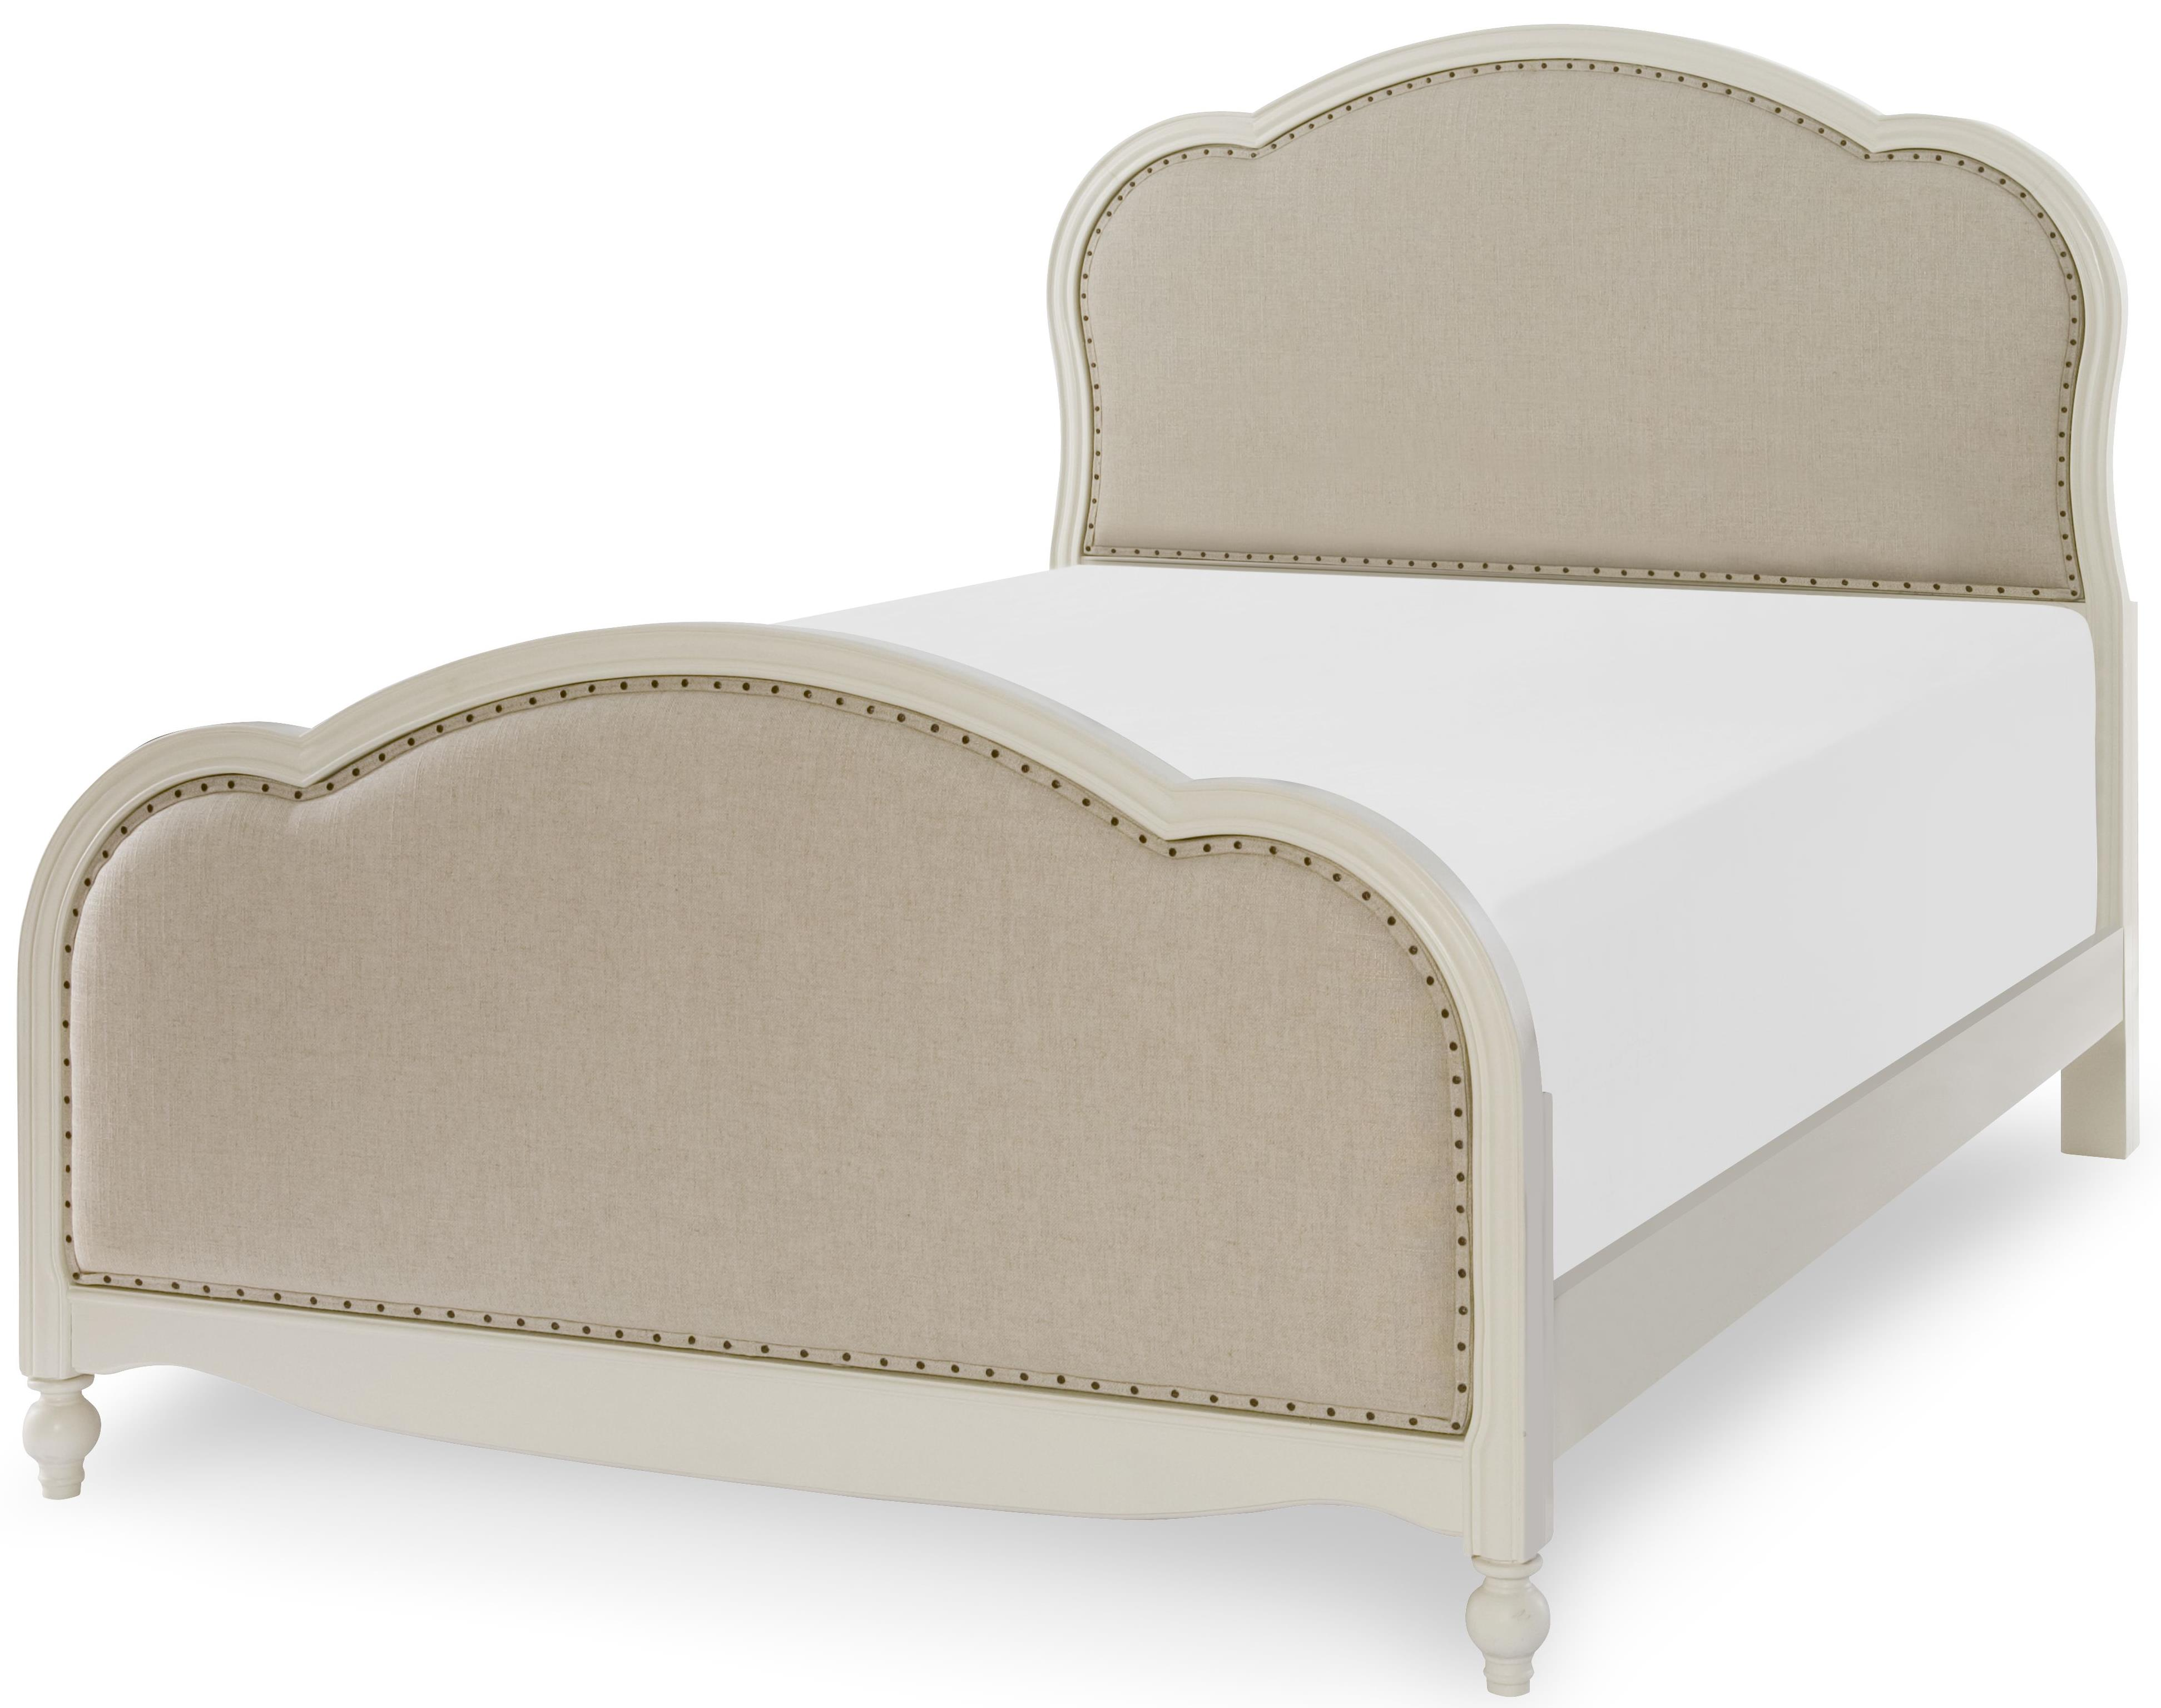 Legacy Classic Kids Harmony Victoria Upholstered Panel Full Bed - Item Number: 4910-4804K